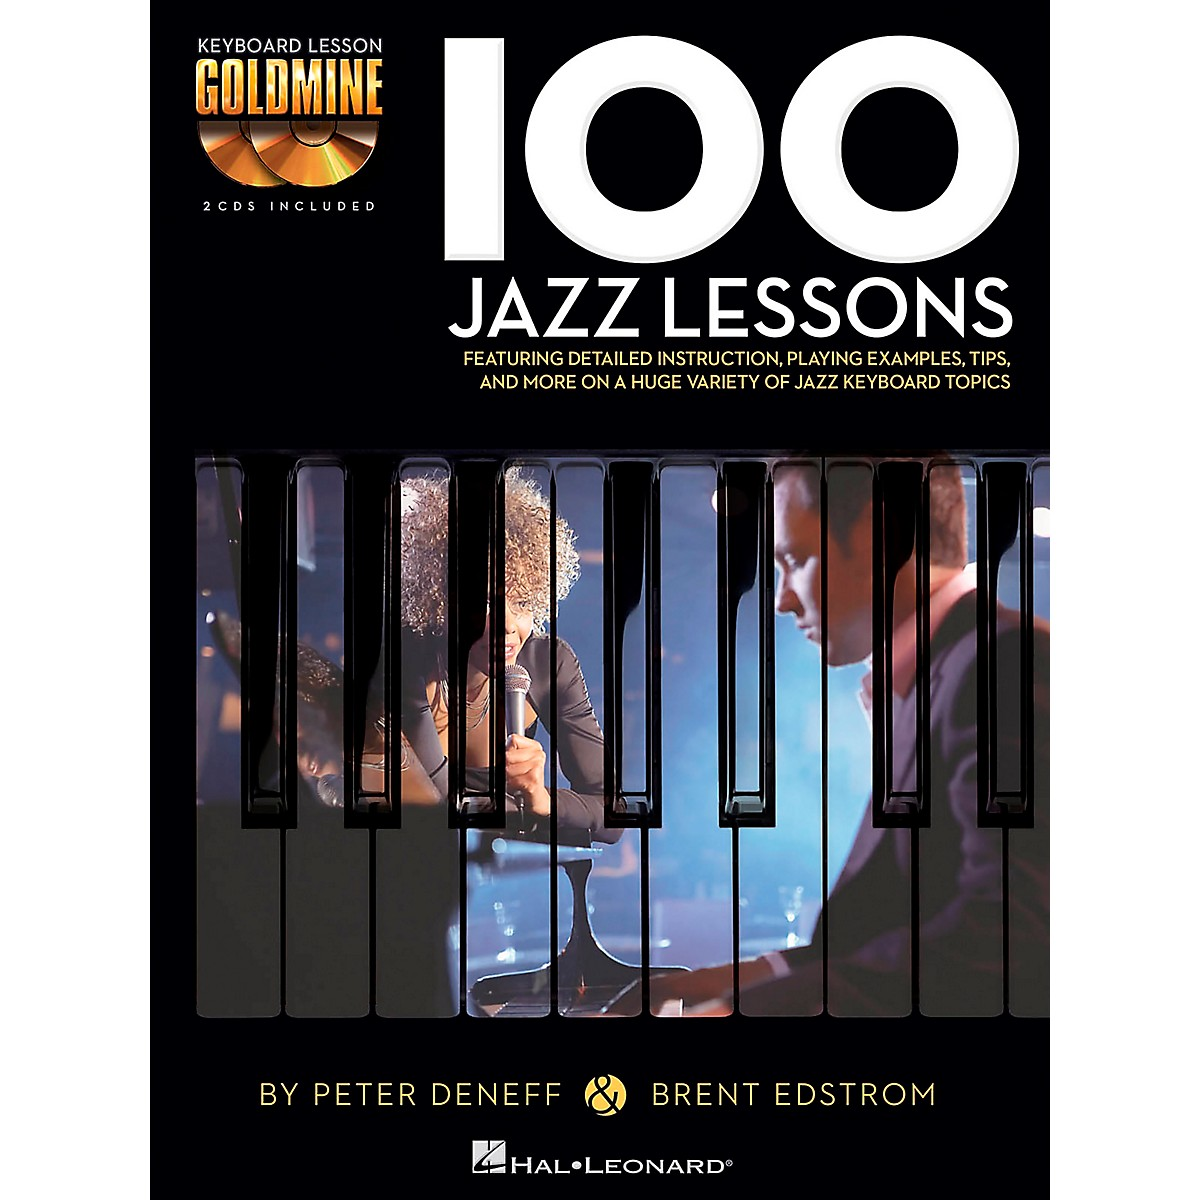 Hal Leonard 100 Jazz Lessons - Keyboard Lesson Goldmine Series Book/2-CD Pack